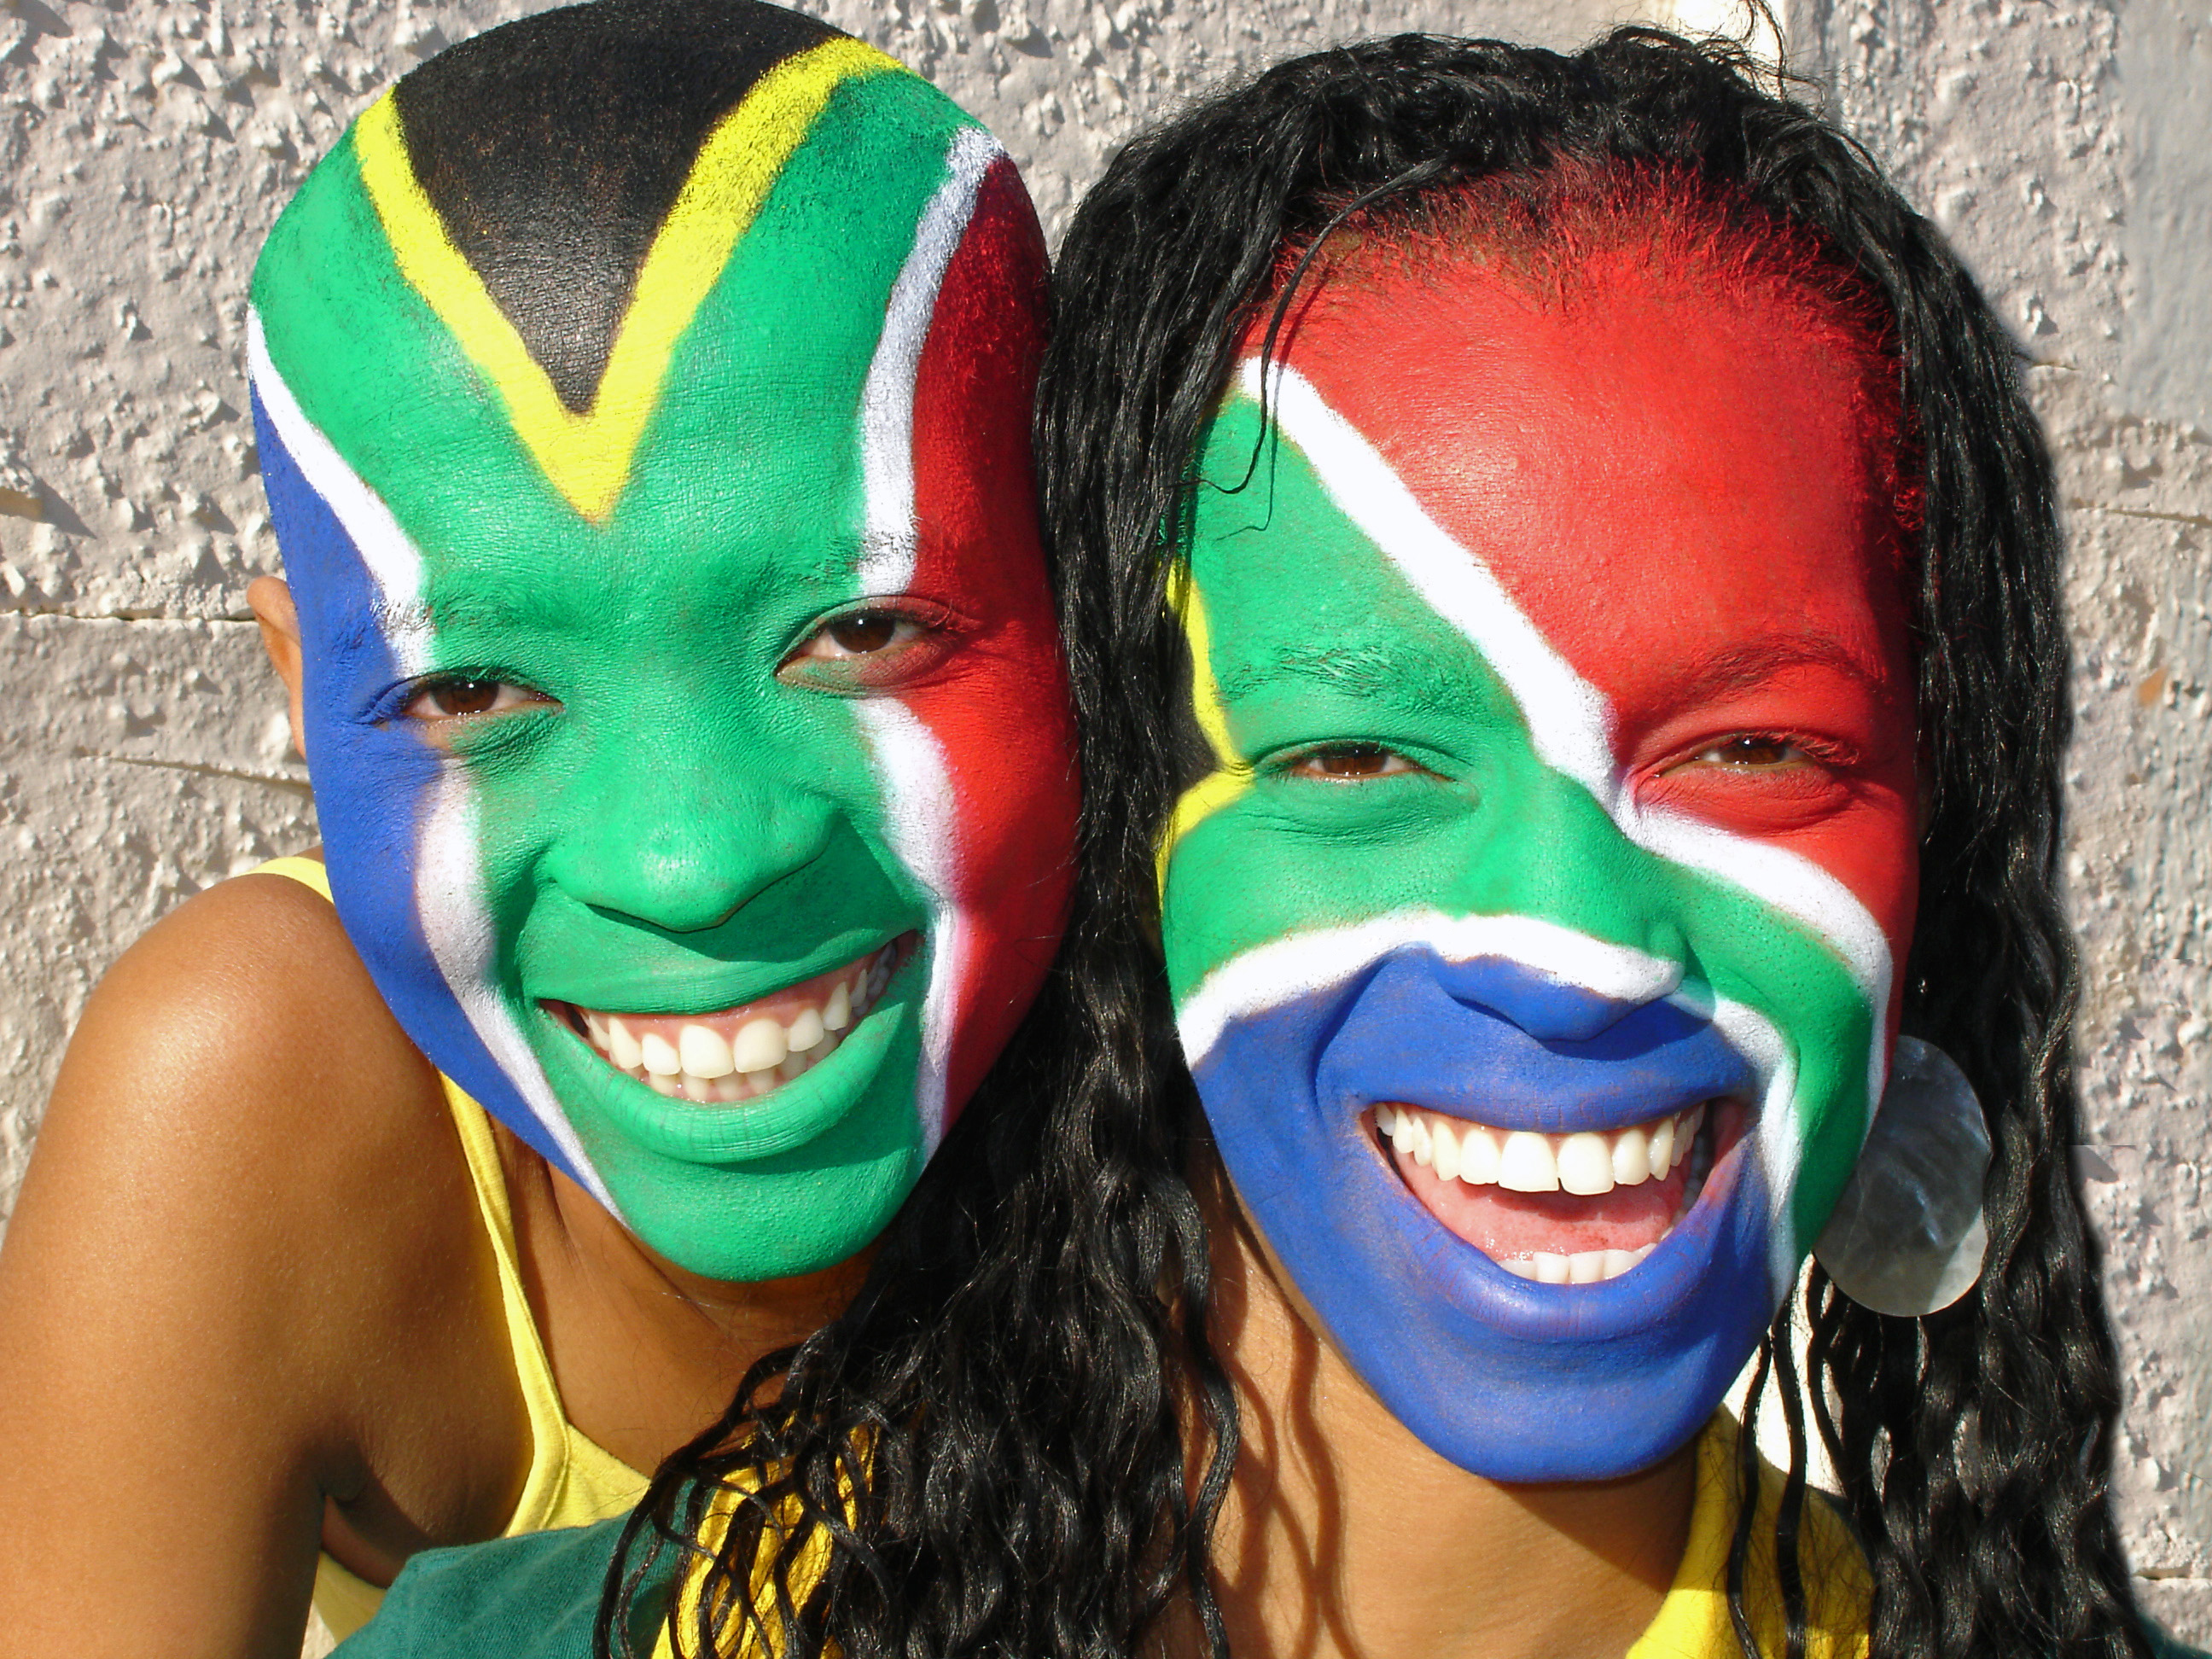 Audience engagement by individual South African fans at the 2010 FIFA World Cup